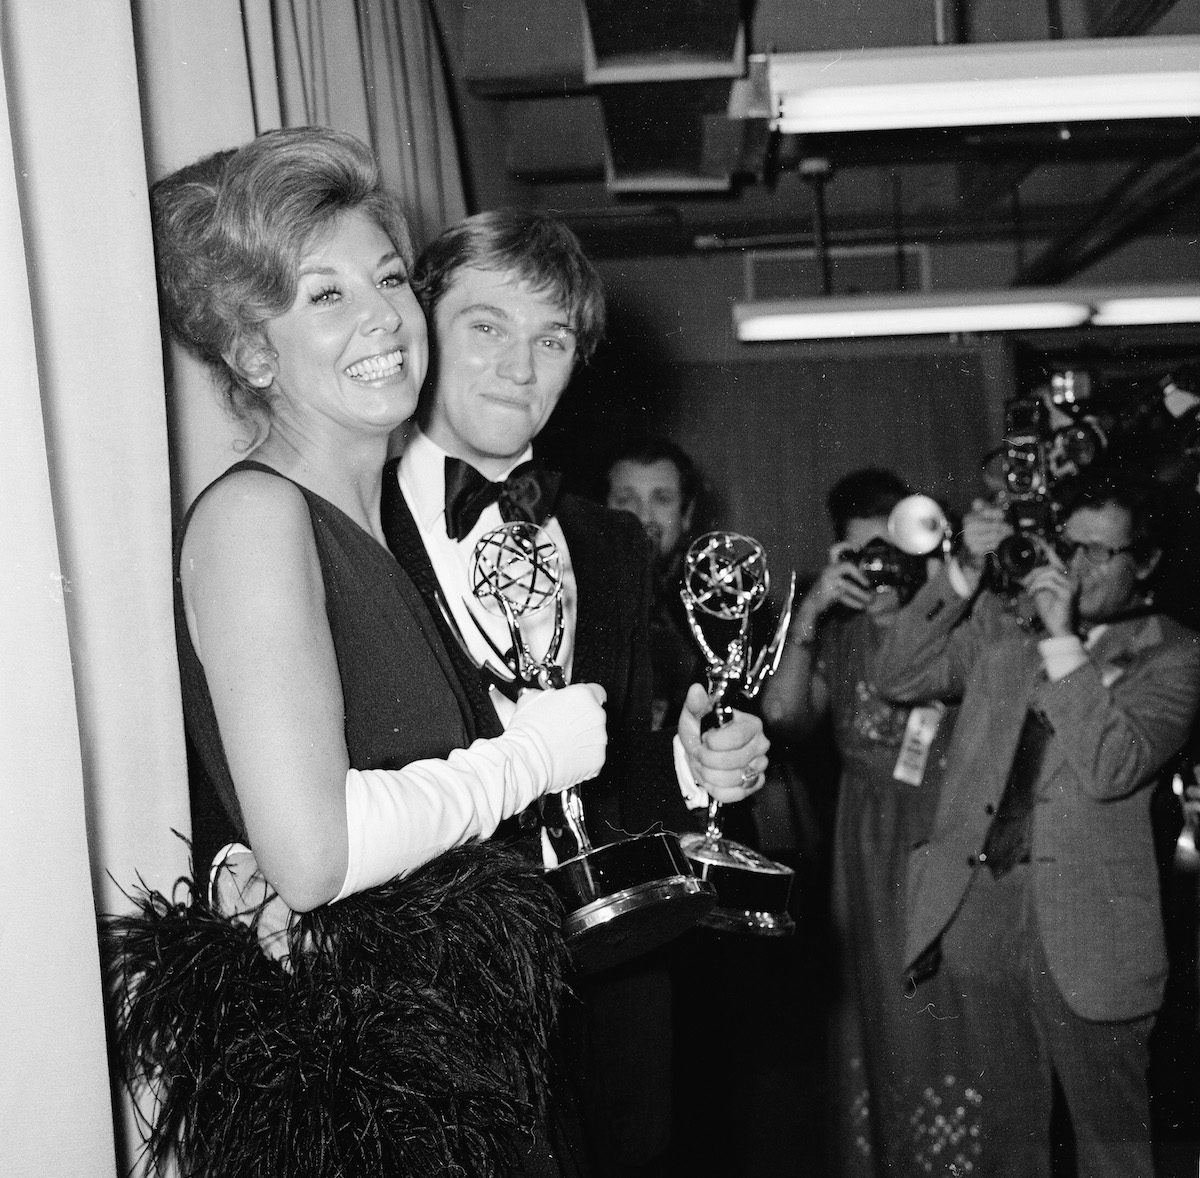 Michael Learned and Richard Thomas with their Emmy awards